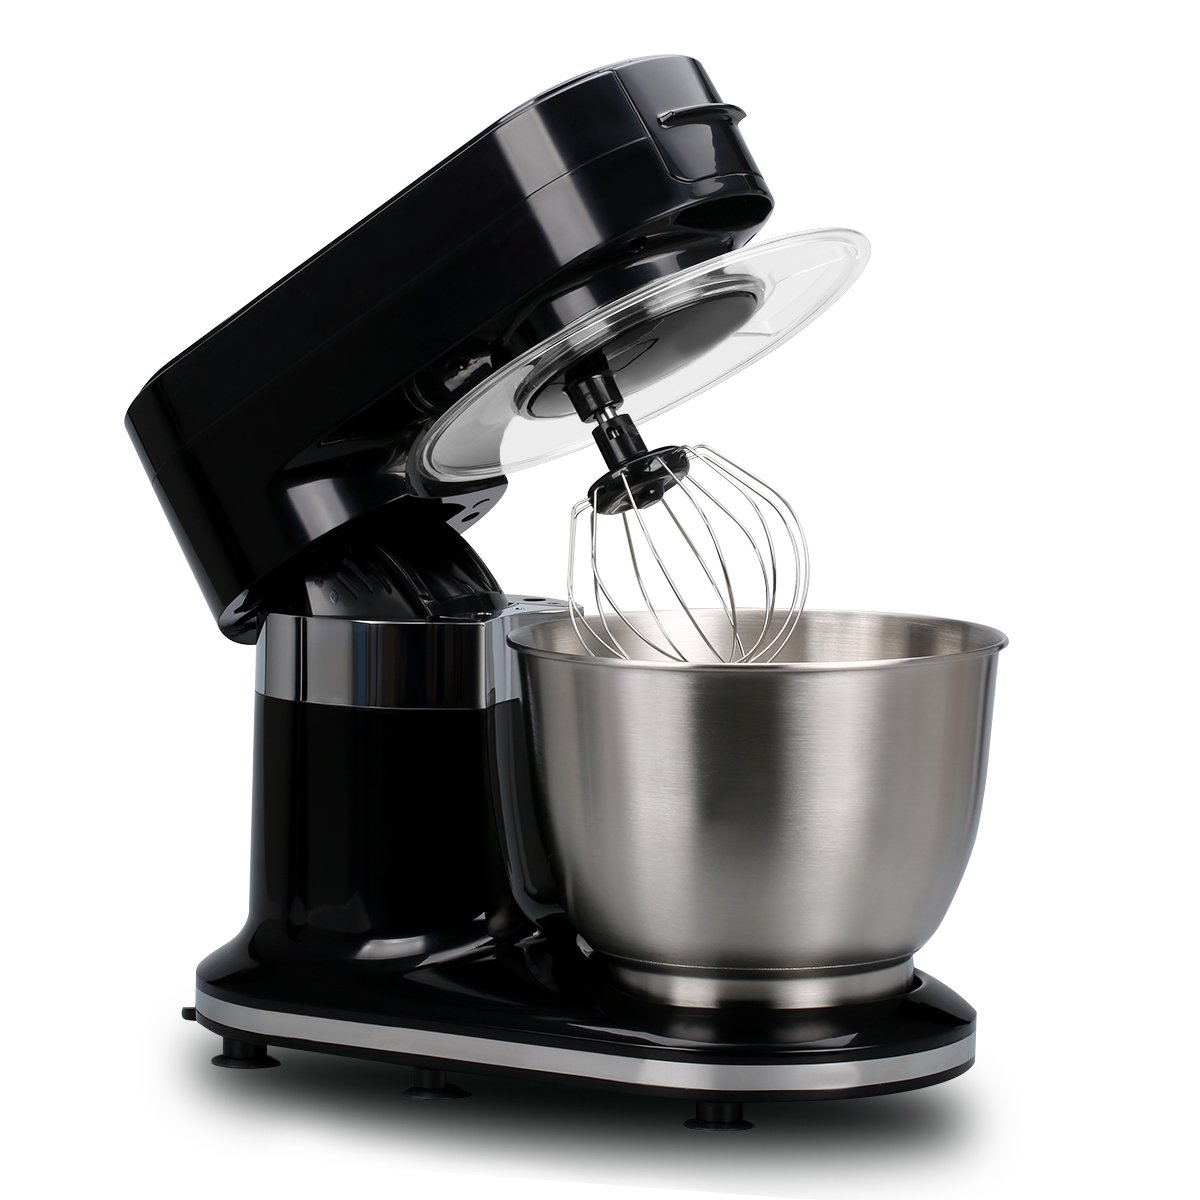 Excelvan Food Stand Mixer